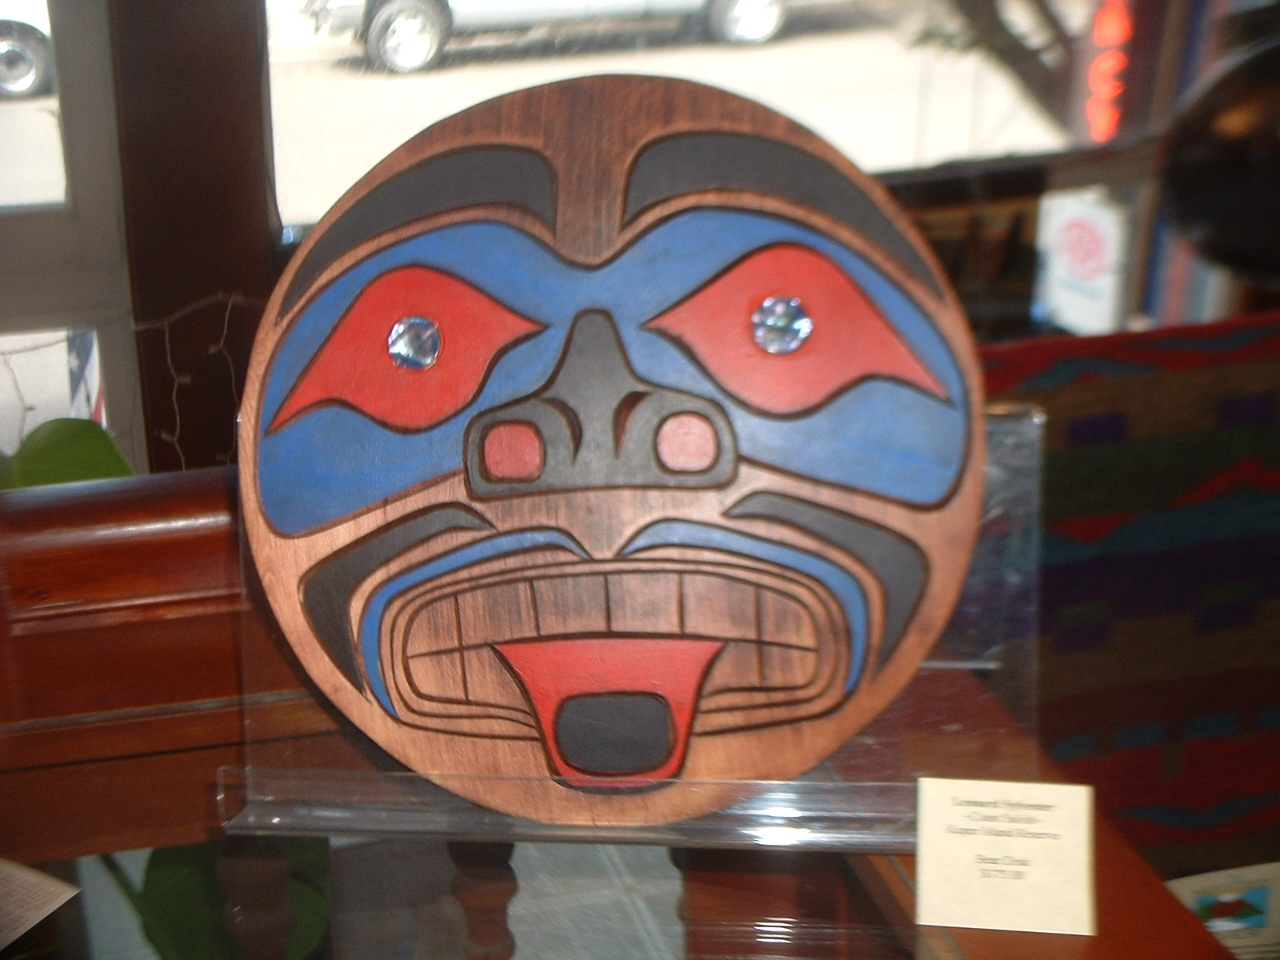 Twilight, Forks, and the Quileute – cultural identity theft